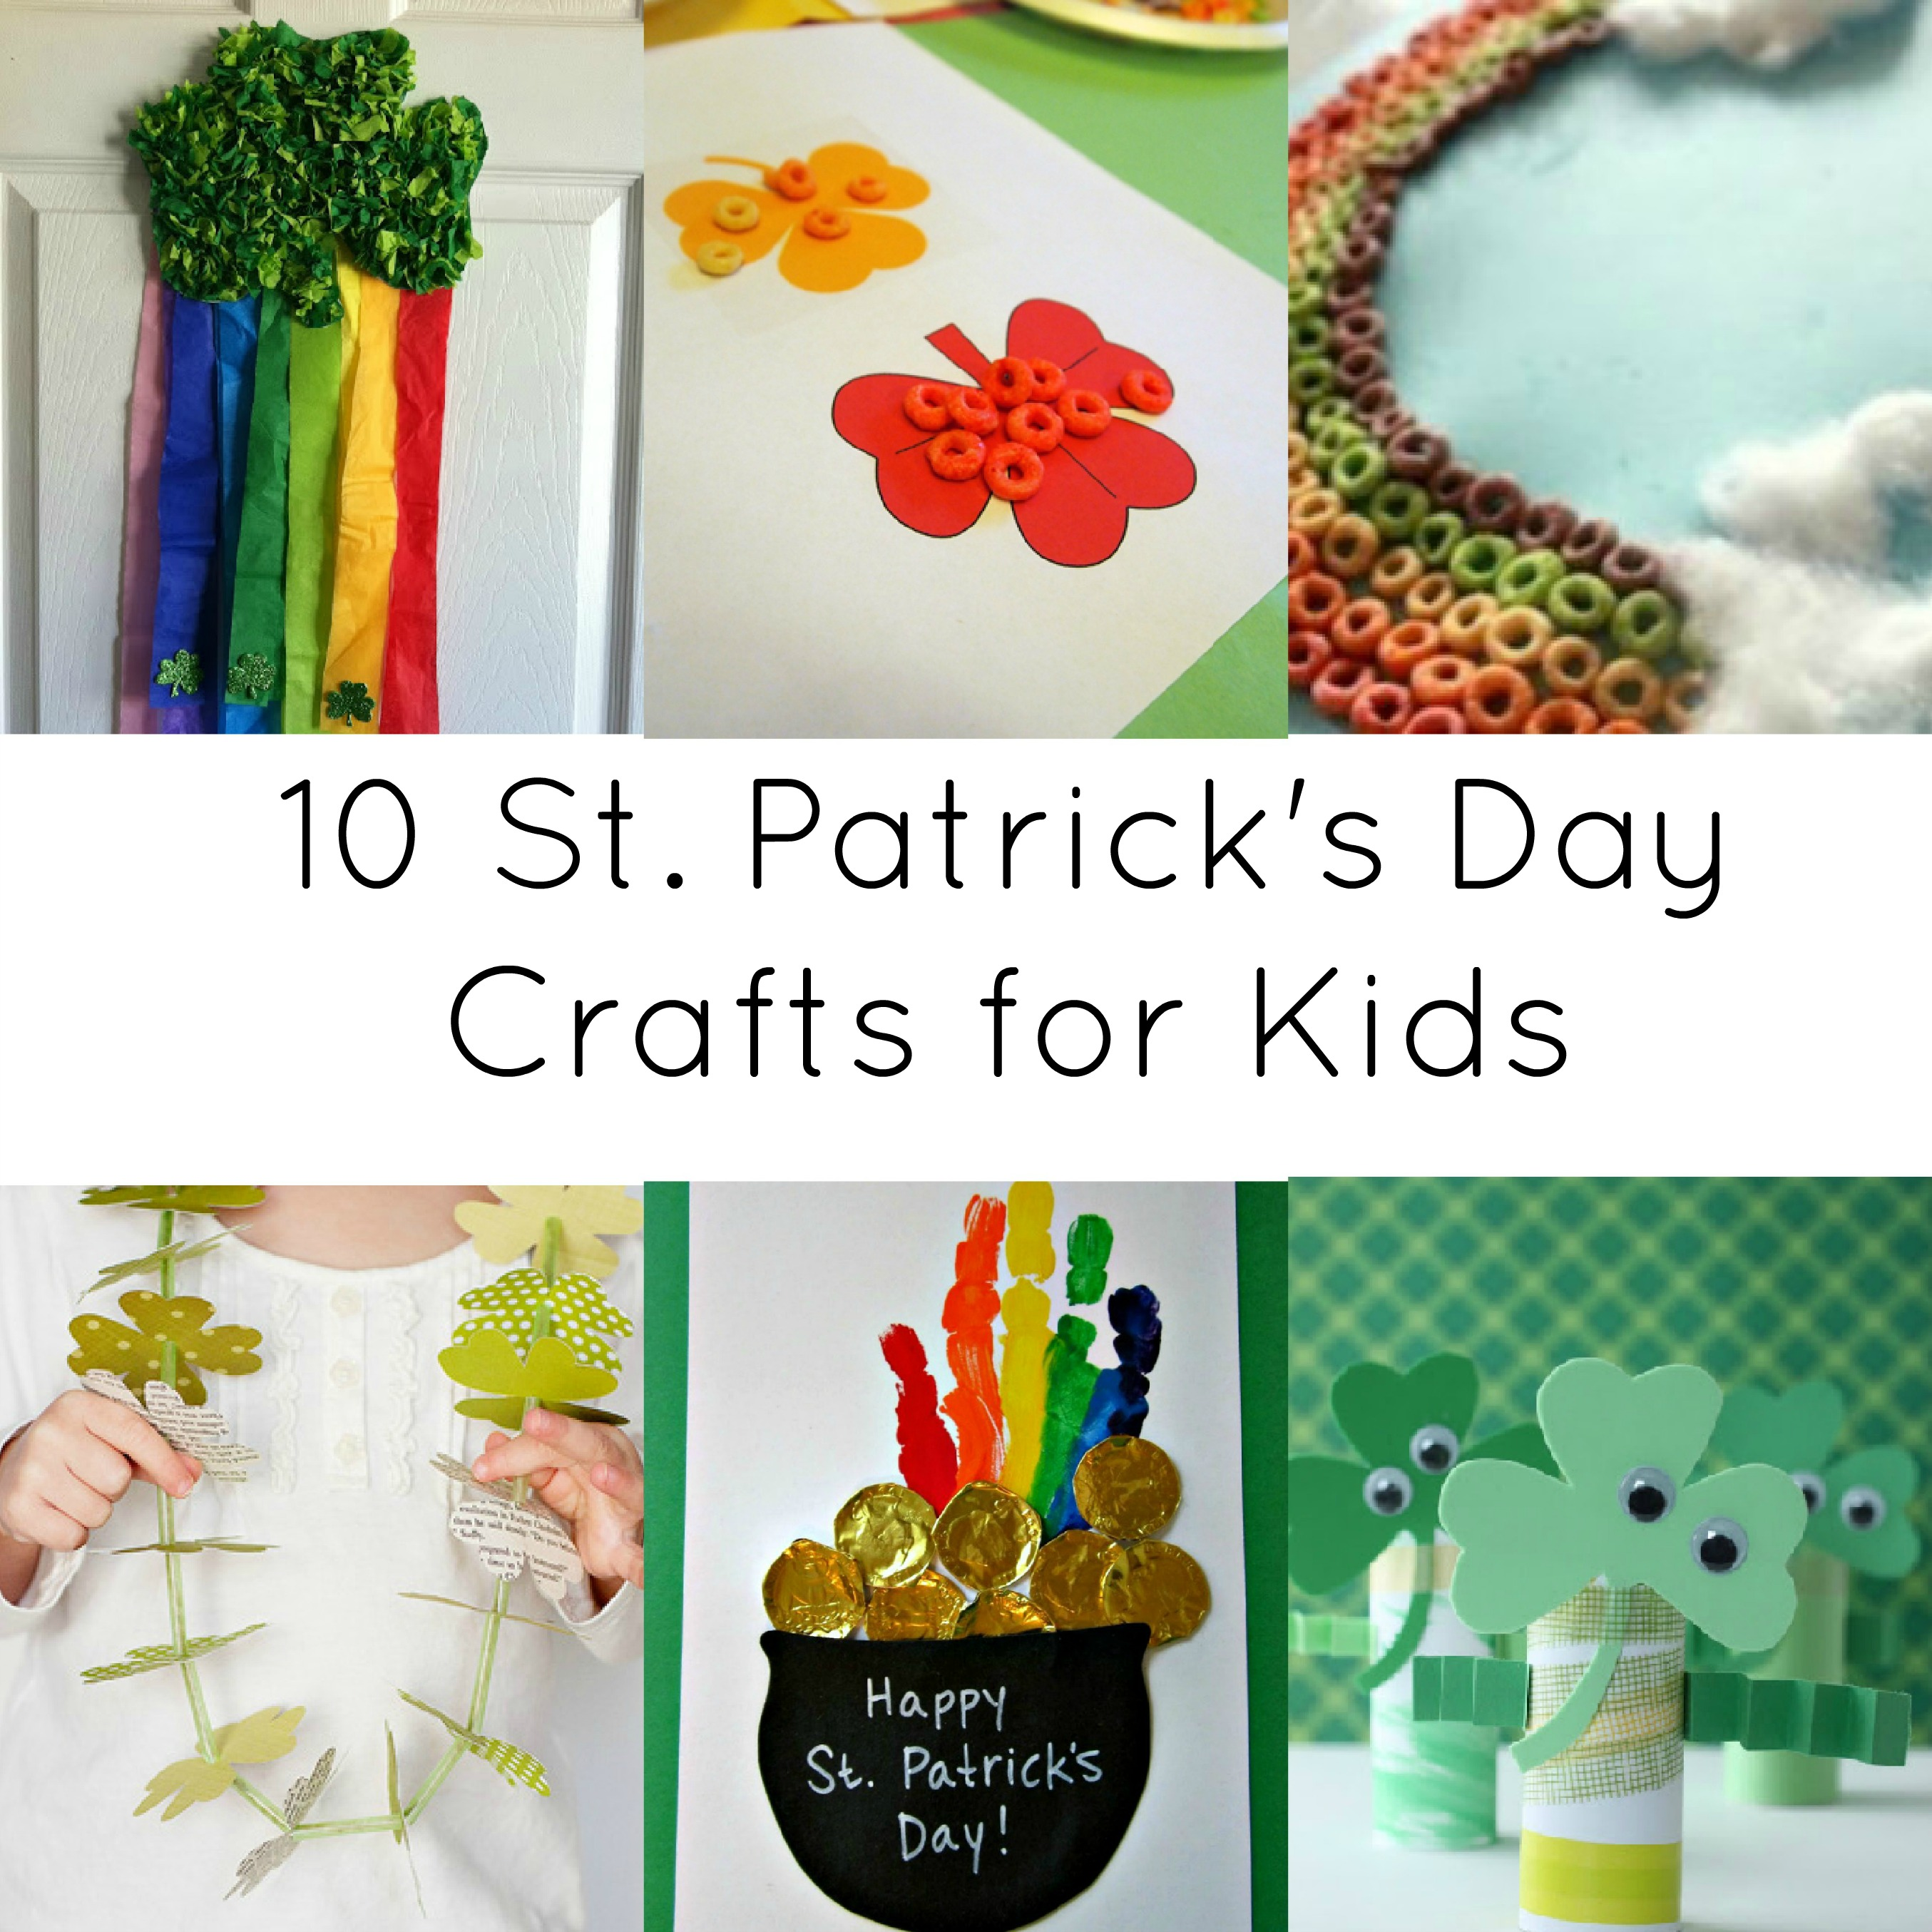 Activities for kids 10 st patrick day crafts for St patrick day craft ideas